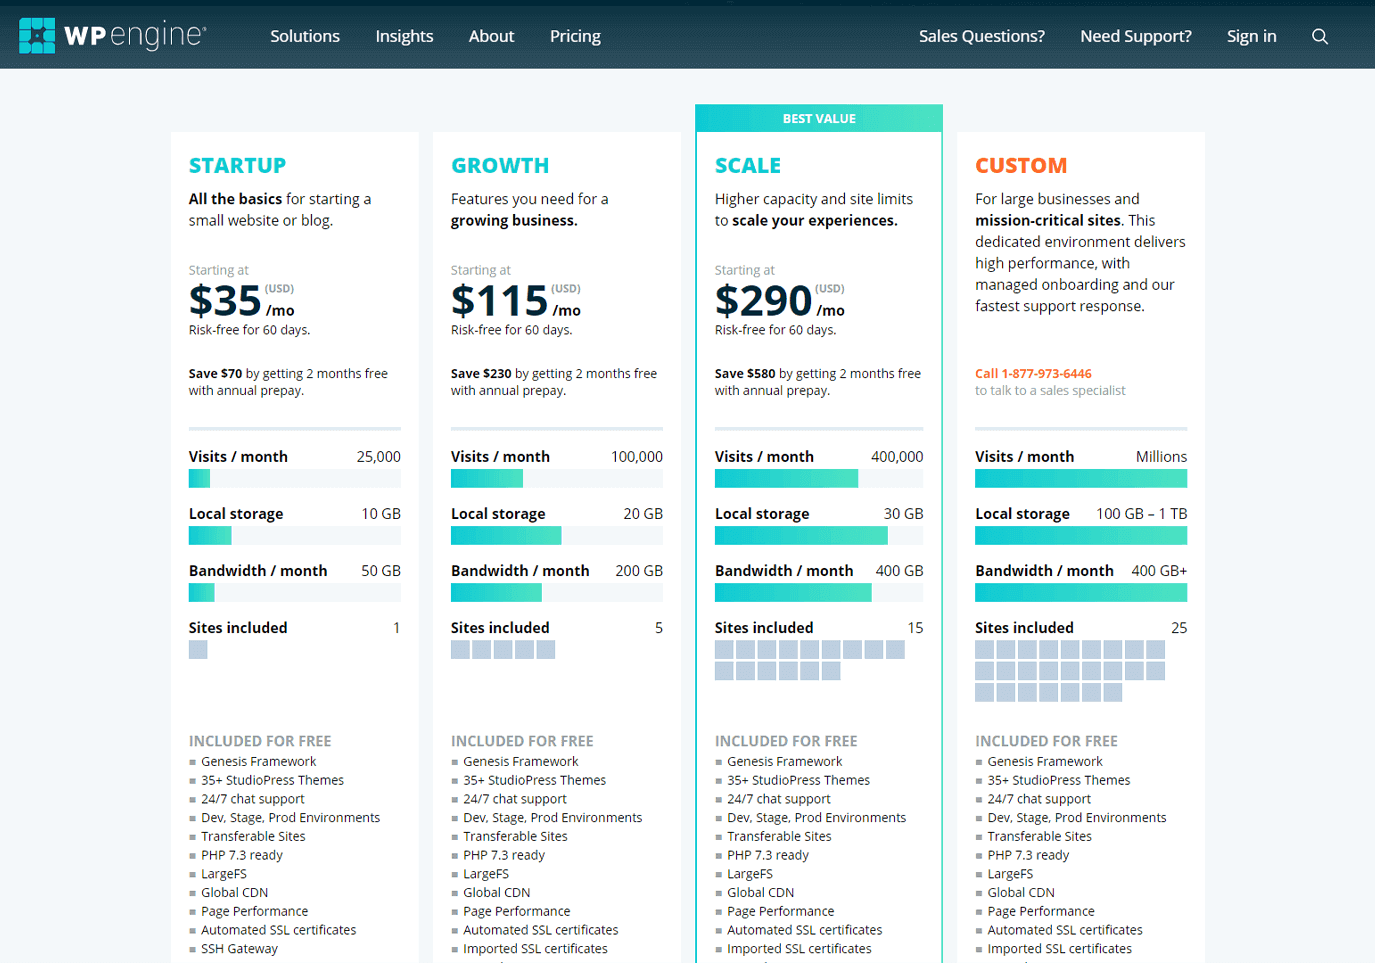 WPEngine Pricing